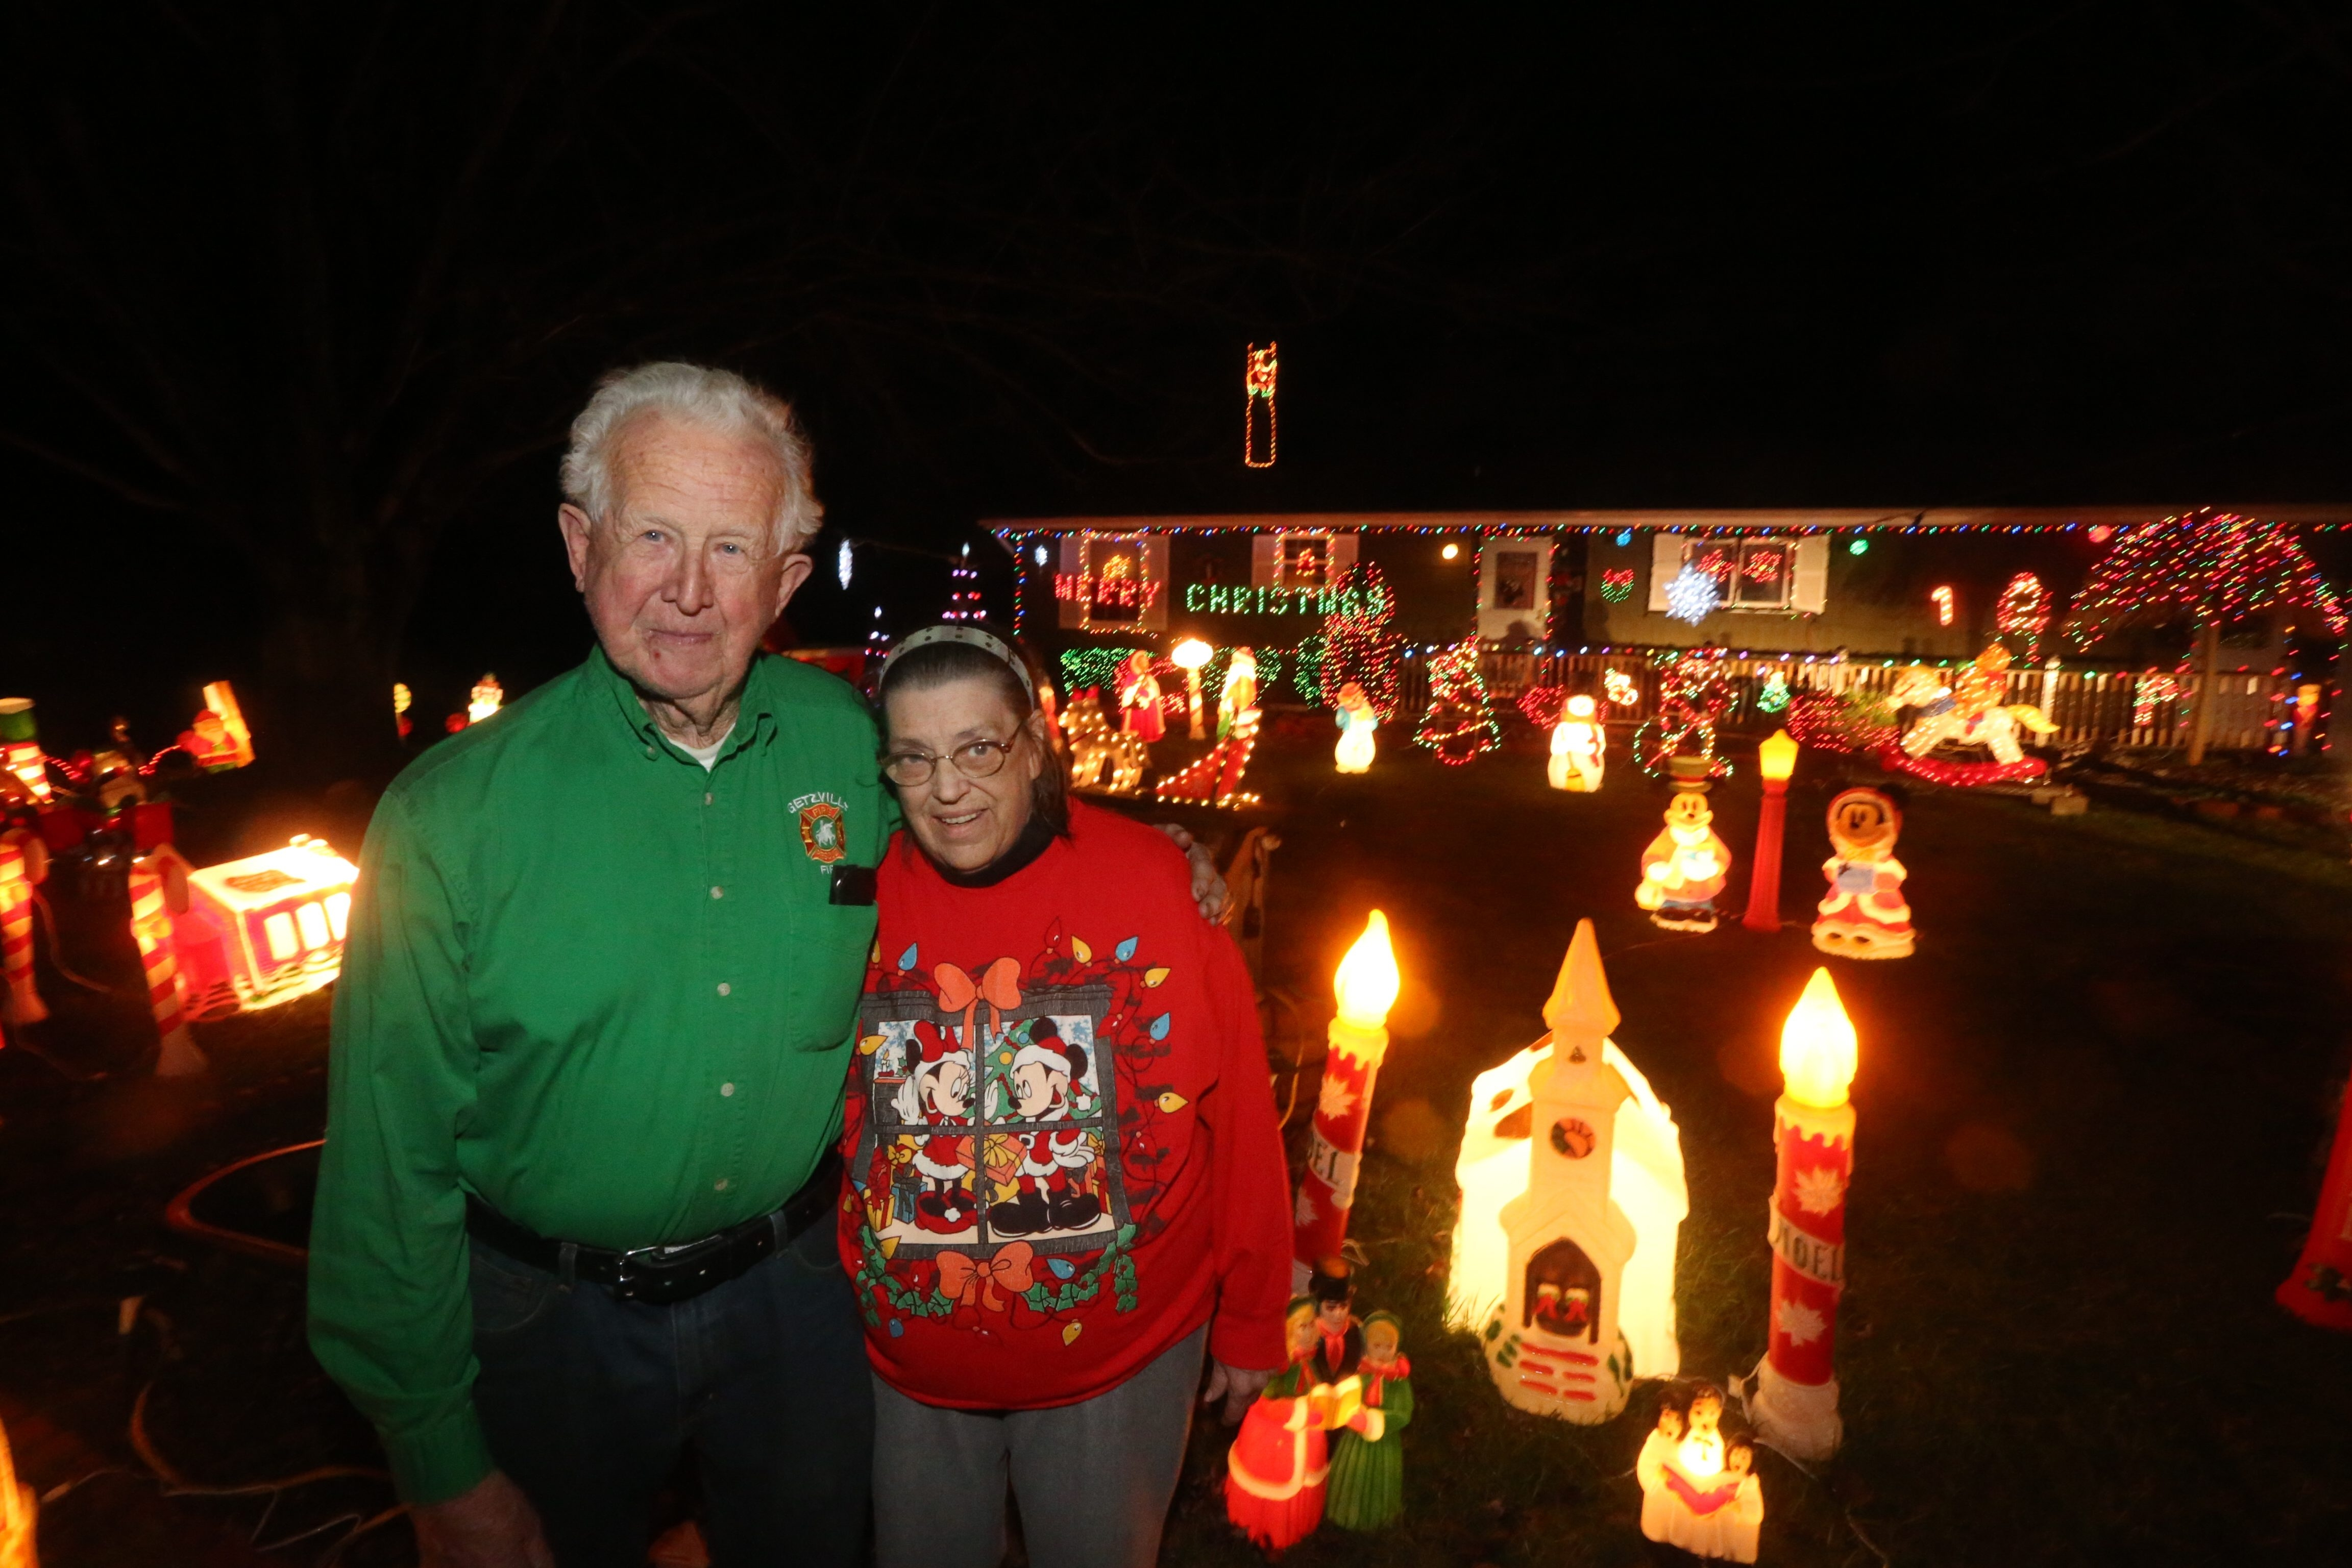 Karen and David Wightman have been setting up a display of Christmas decorations on the front lawn of their Dodge Road home in Getzville for 50 years. This year, they cut it back from 300 feet to 125 feet, but it still attracts plenty of visitors.